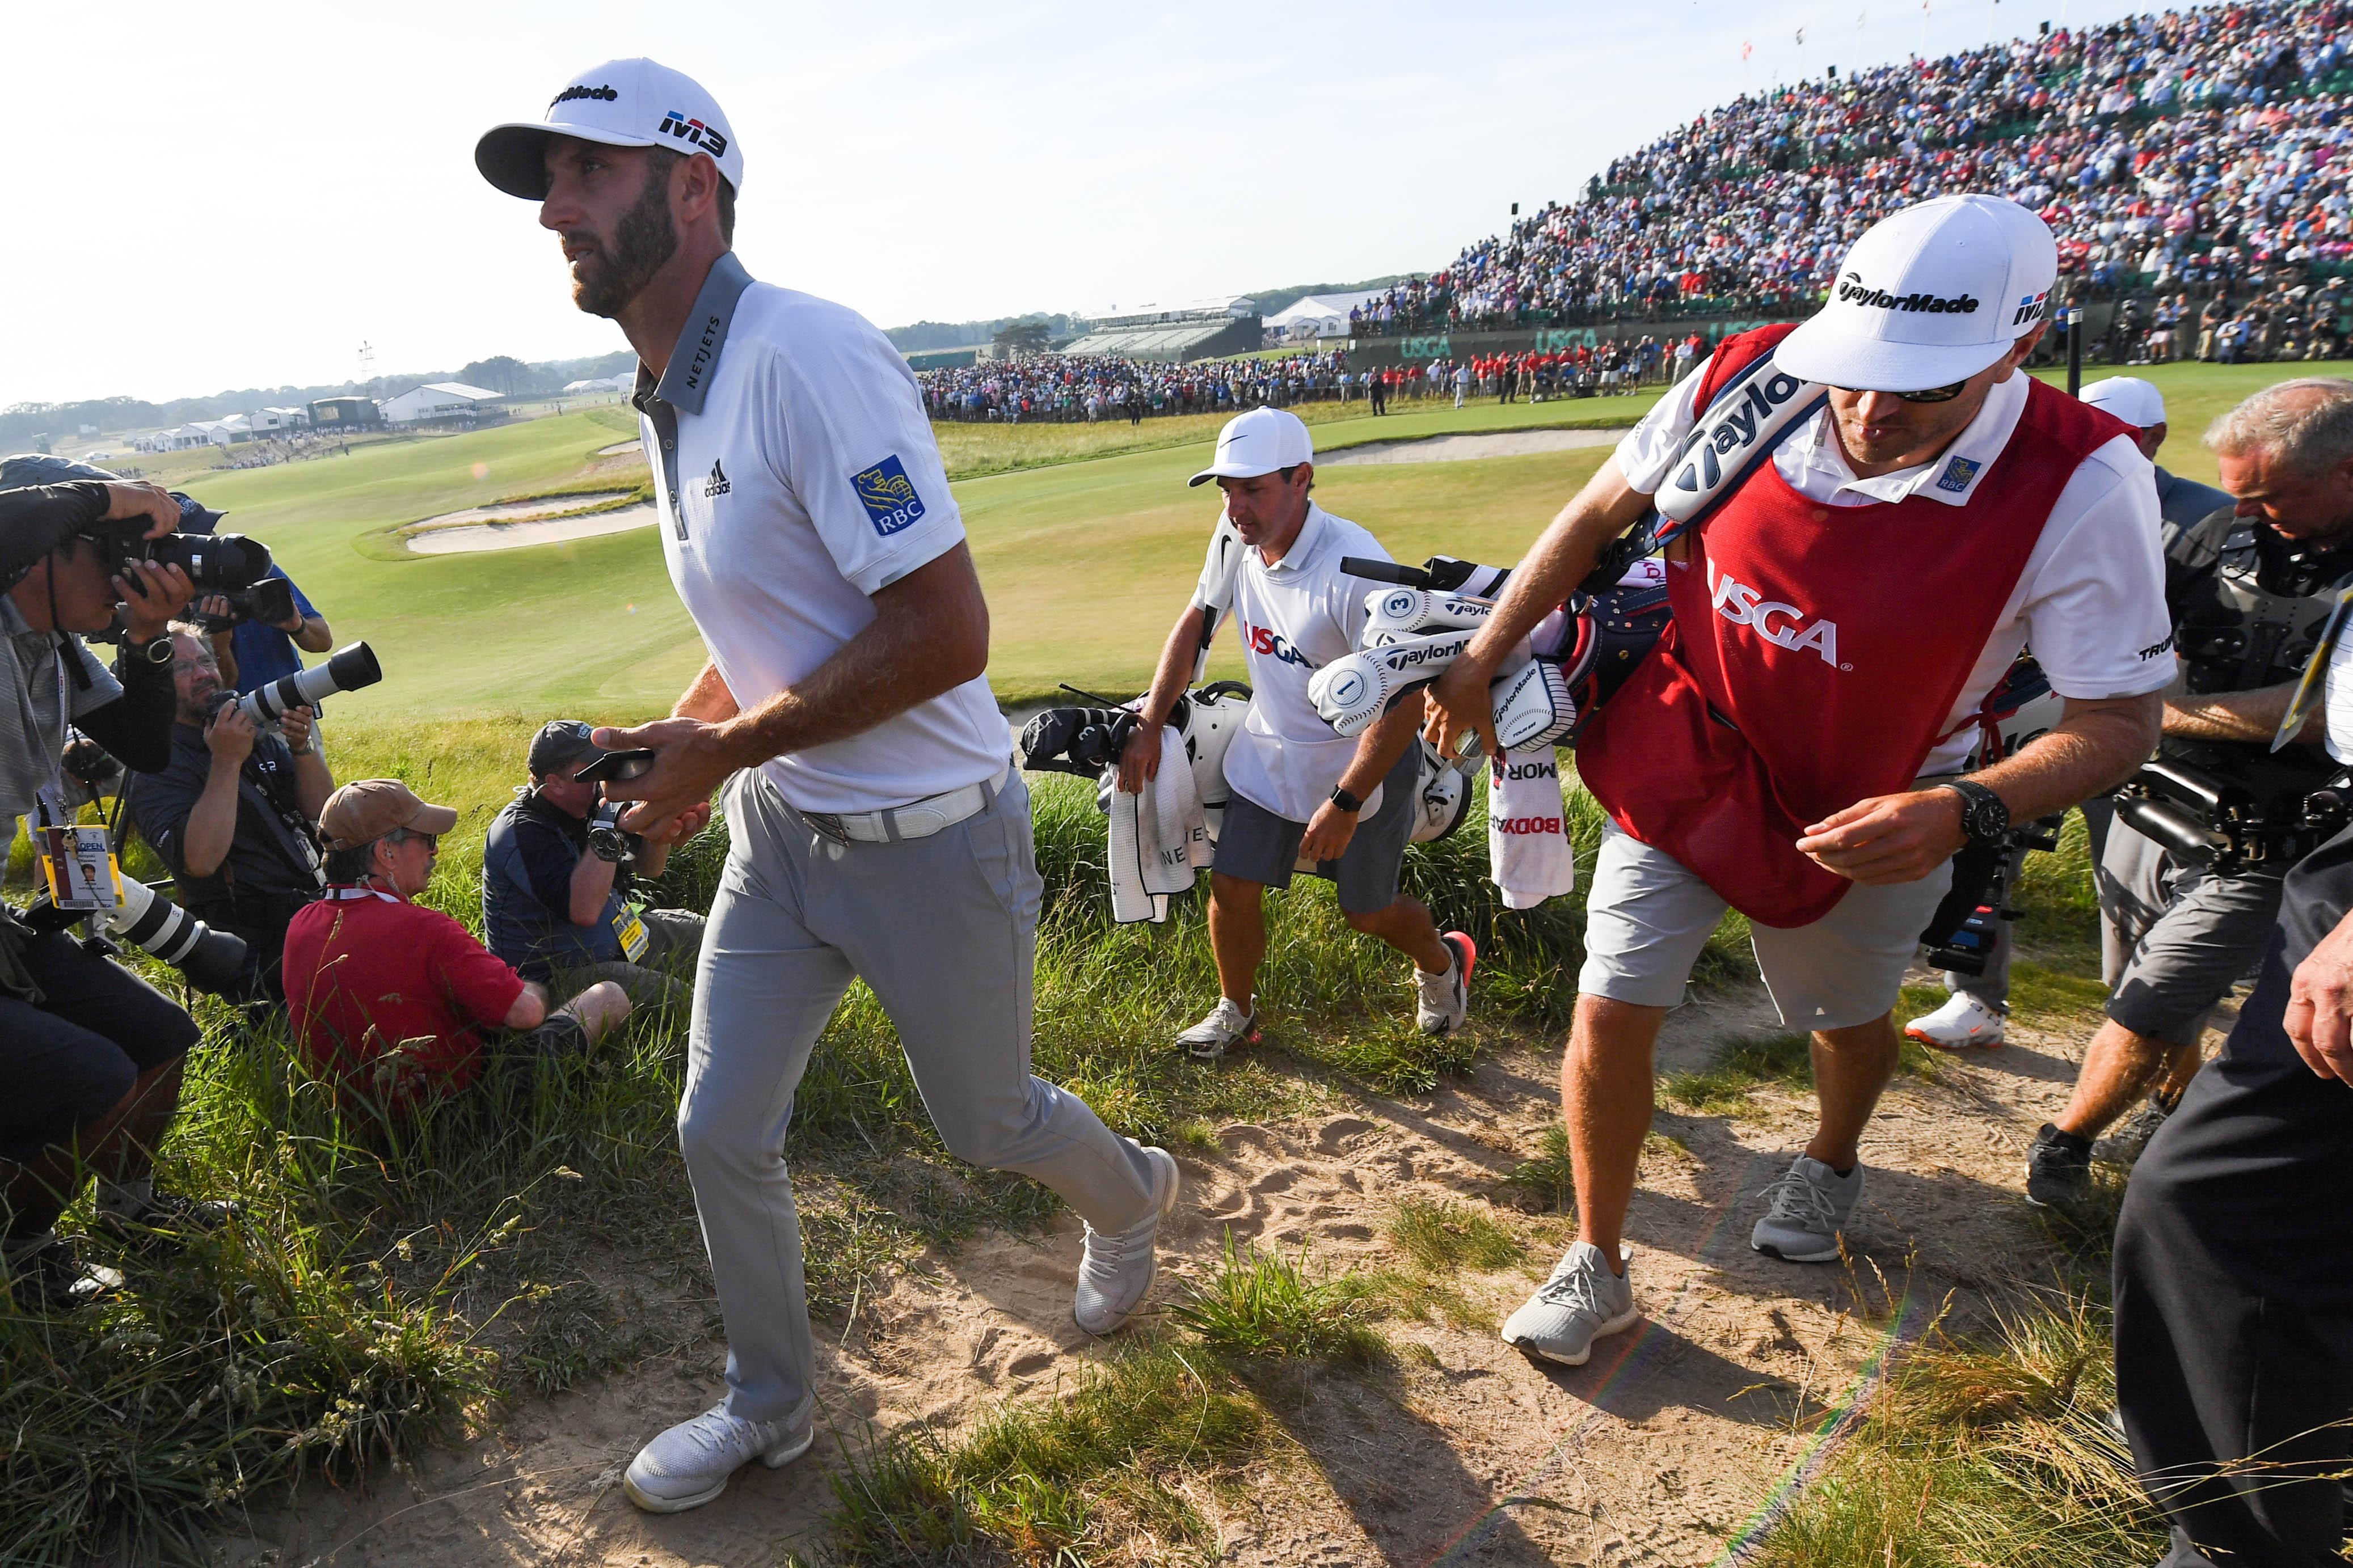 Jun 17, 2018; Southampton, NY, USA; Dustin Johnson walks off the eighteenth green after completing the final round of the U.S. Open golf tournament at Shinnecock Hills GC - Shinnecock Hills Golf C. Mandatory Credit: Shanna Lockwood-USA TODAY Sports